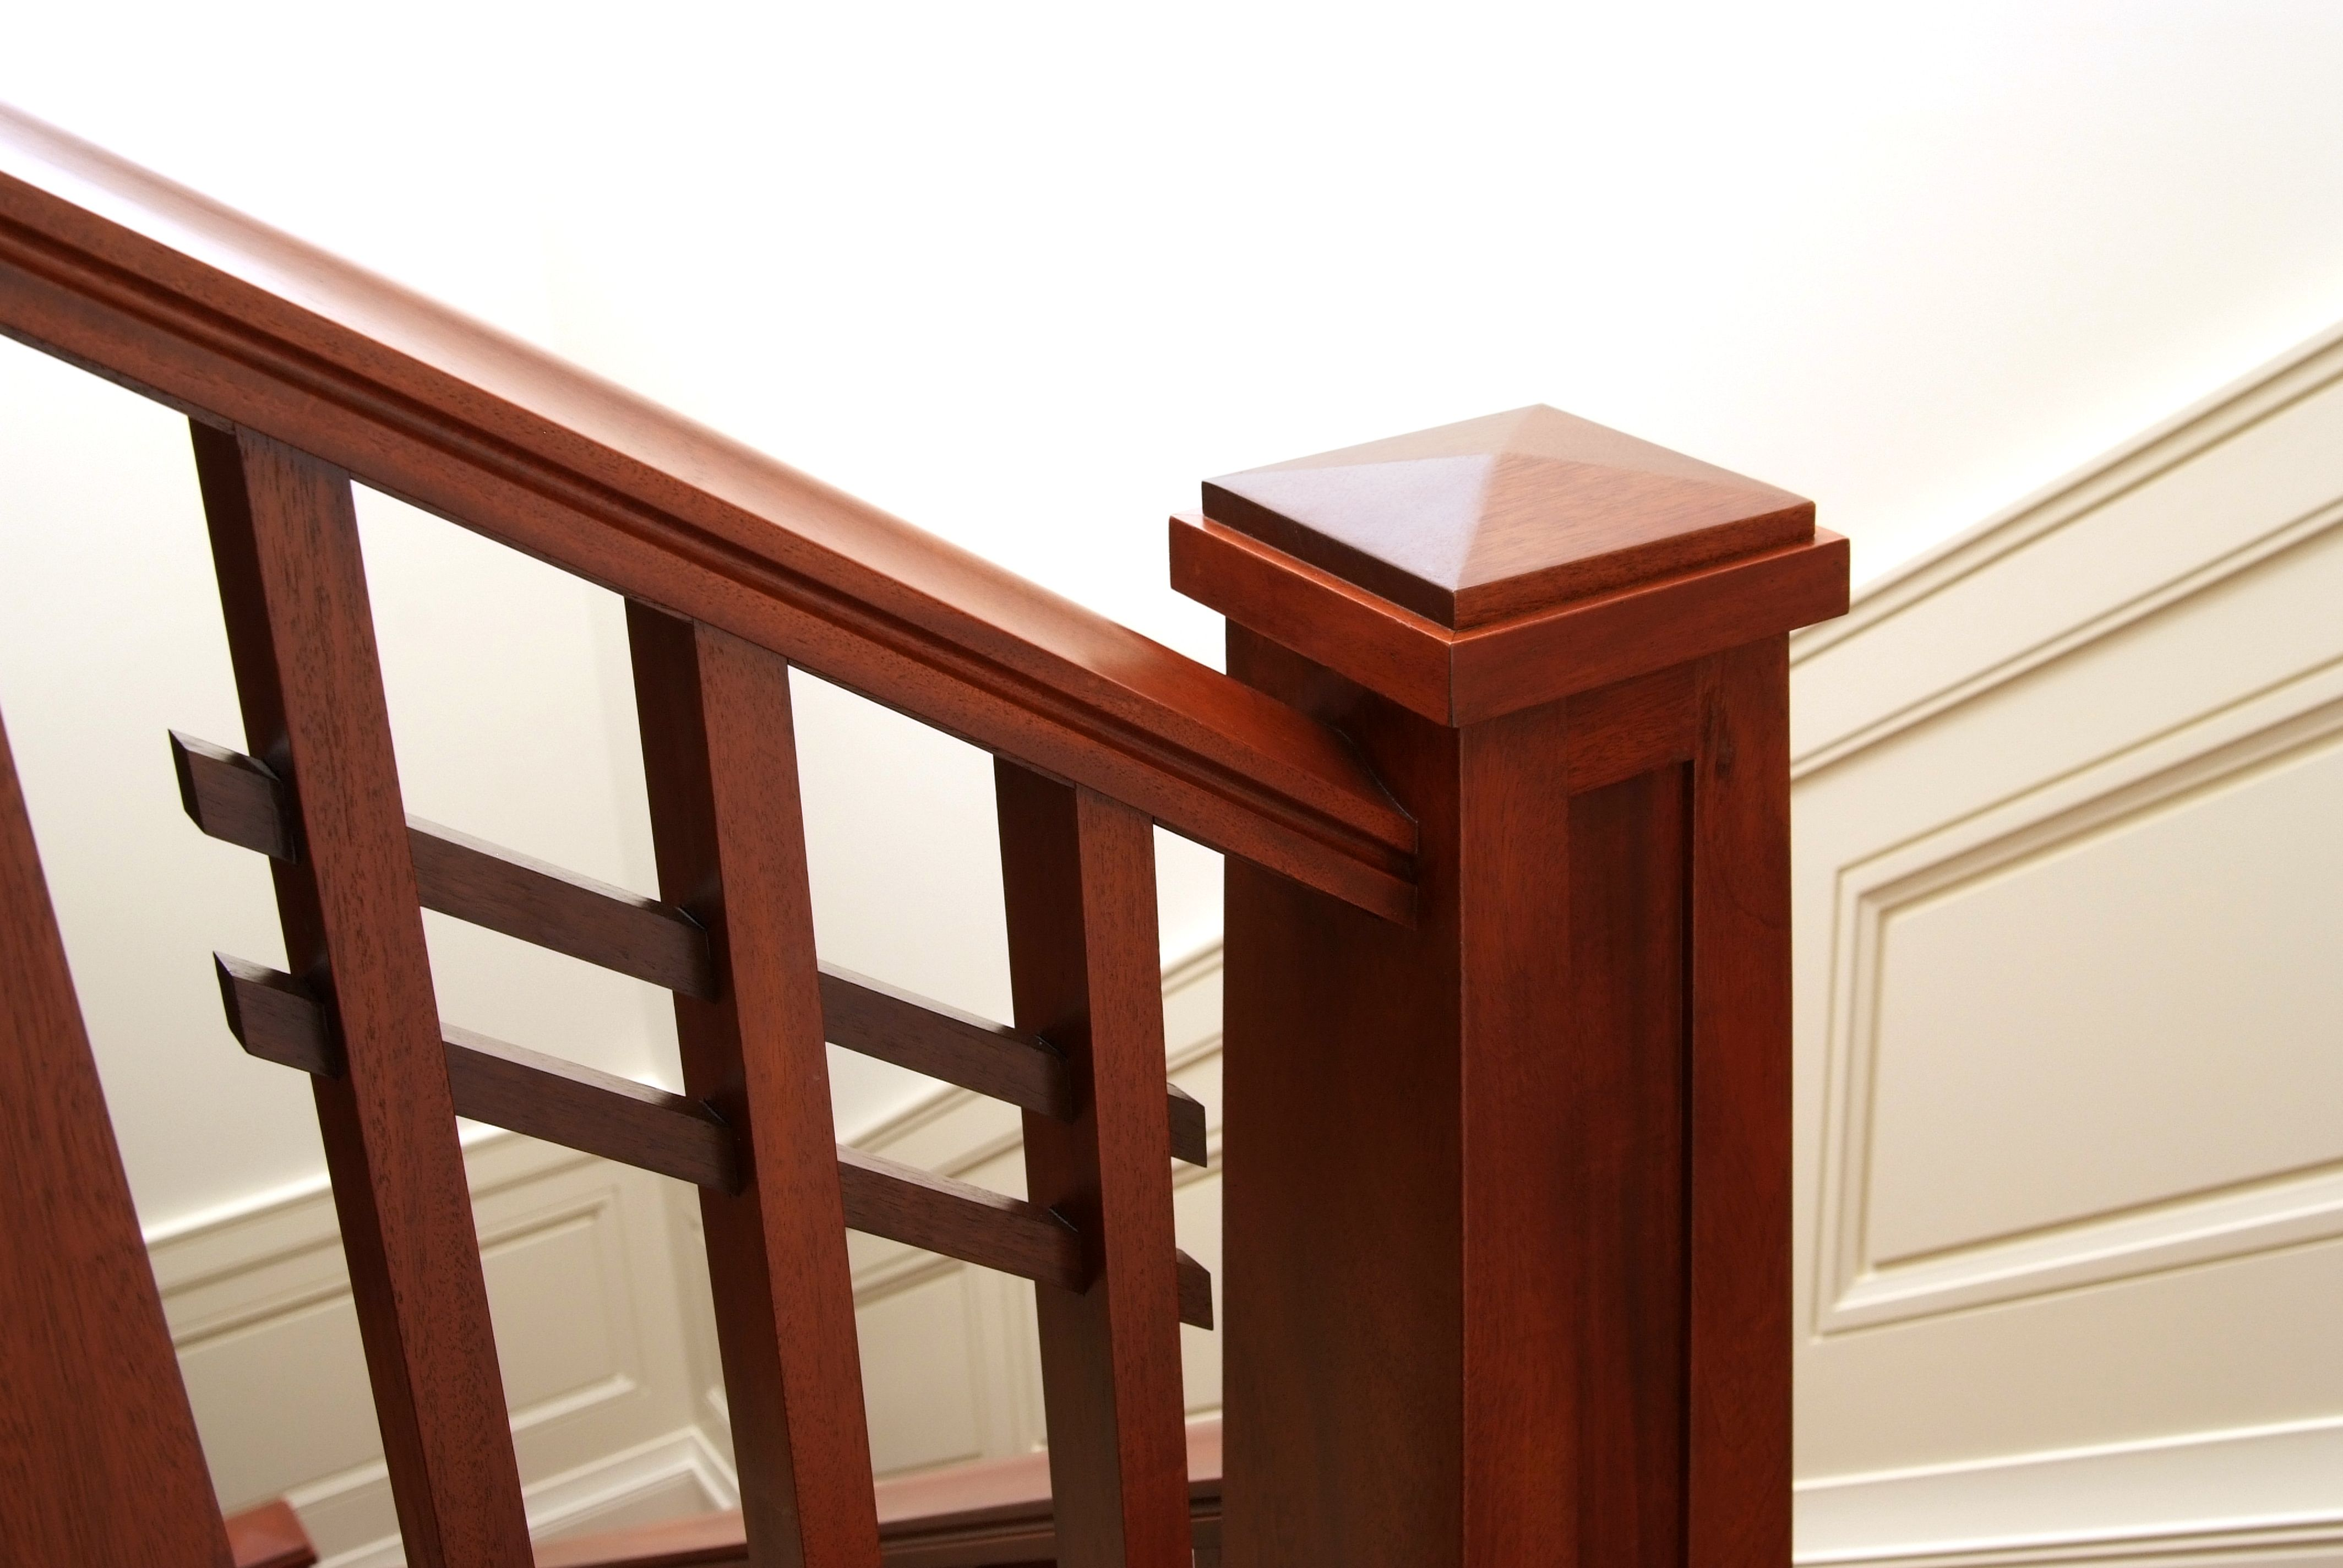 Custom Craftsman Mahogany Handrail, Square Balusters And Pyramid Cap Newel  Post With Walnut Horizontal Slats